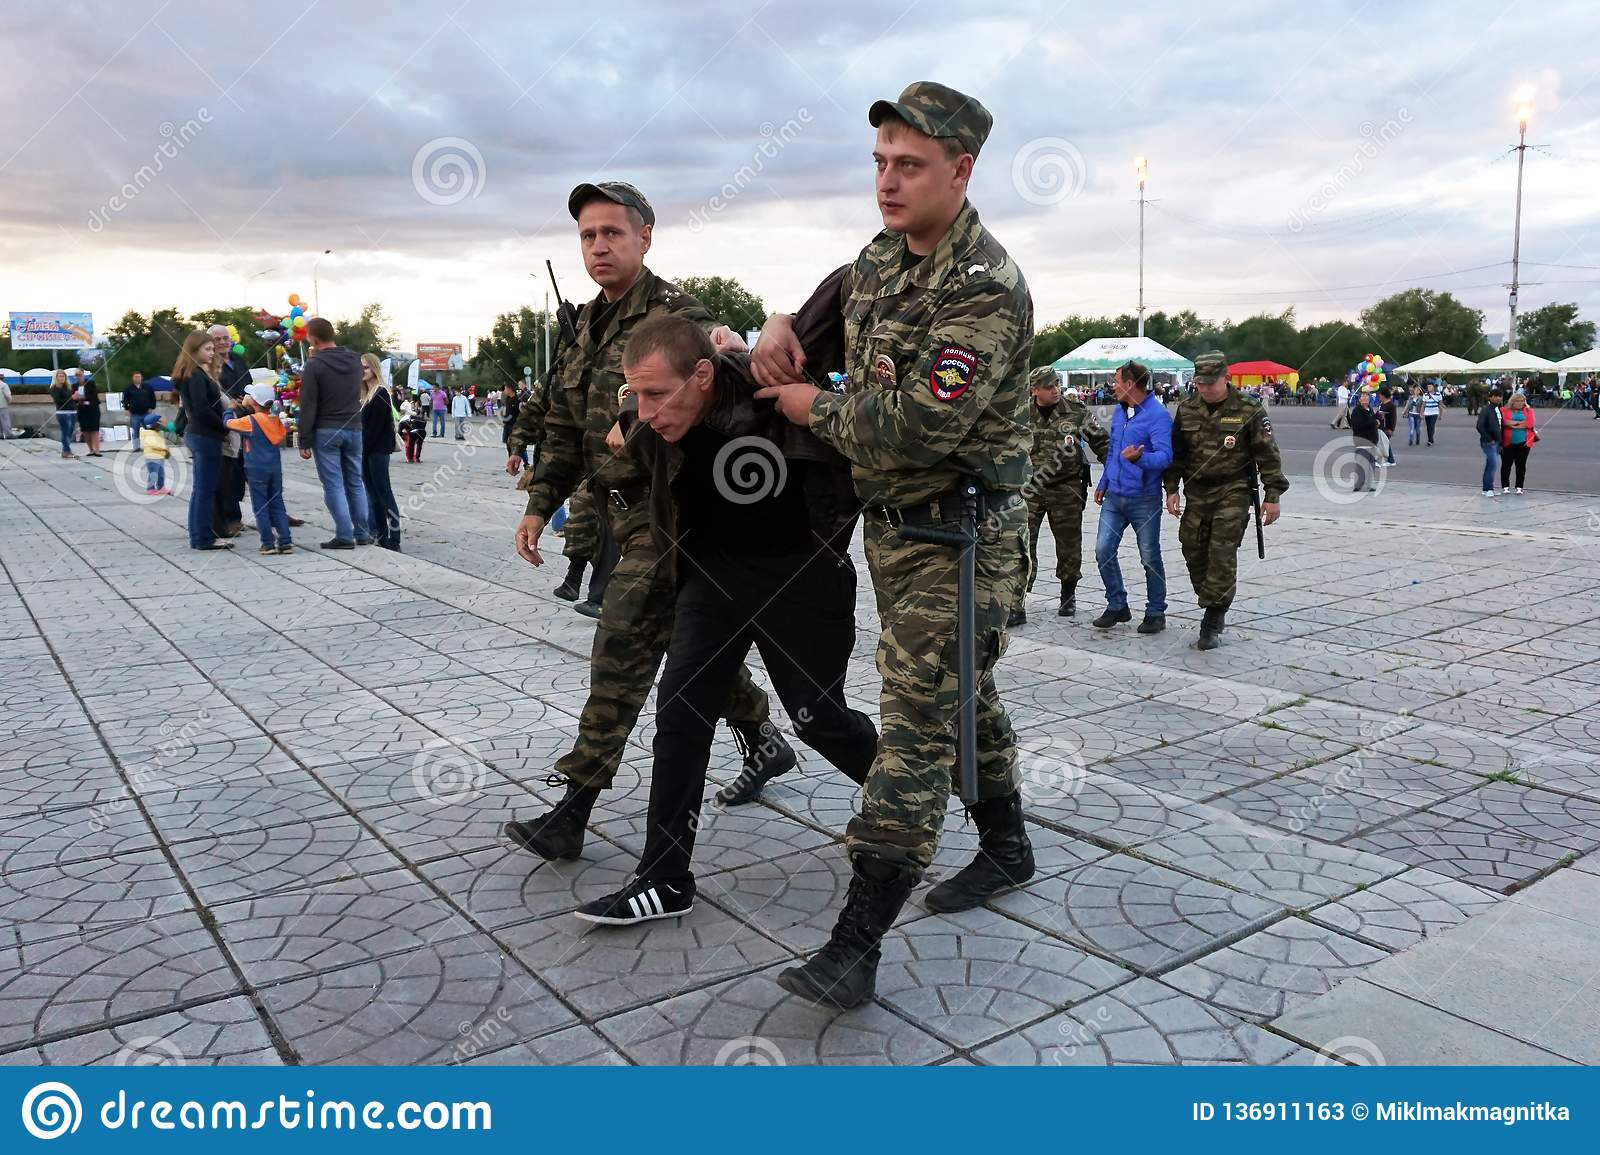 Russia, city of Magnitogorsk, - August, 7, 2015. Russian police escort the alleged offender to the exit from the town square. Law